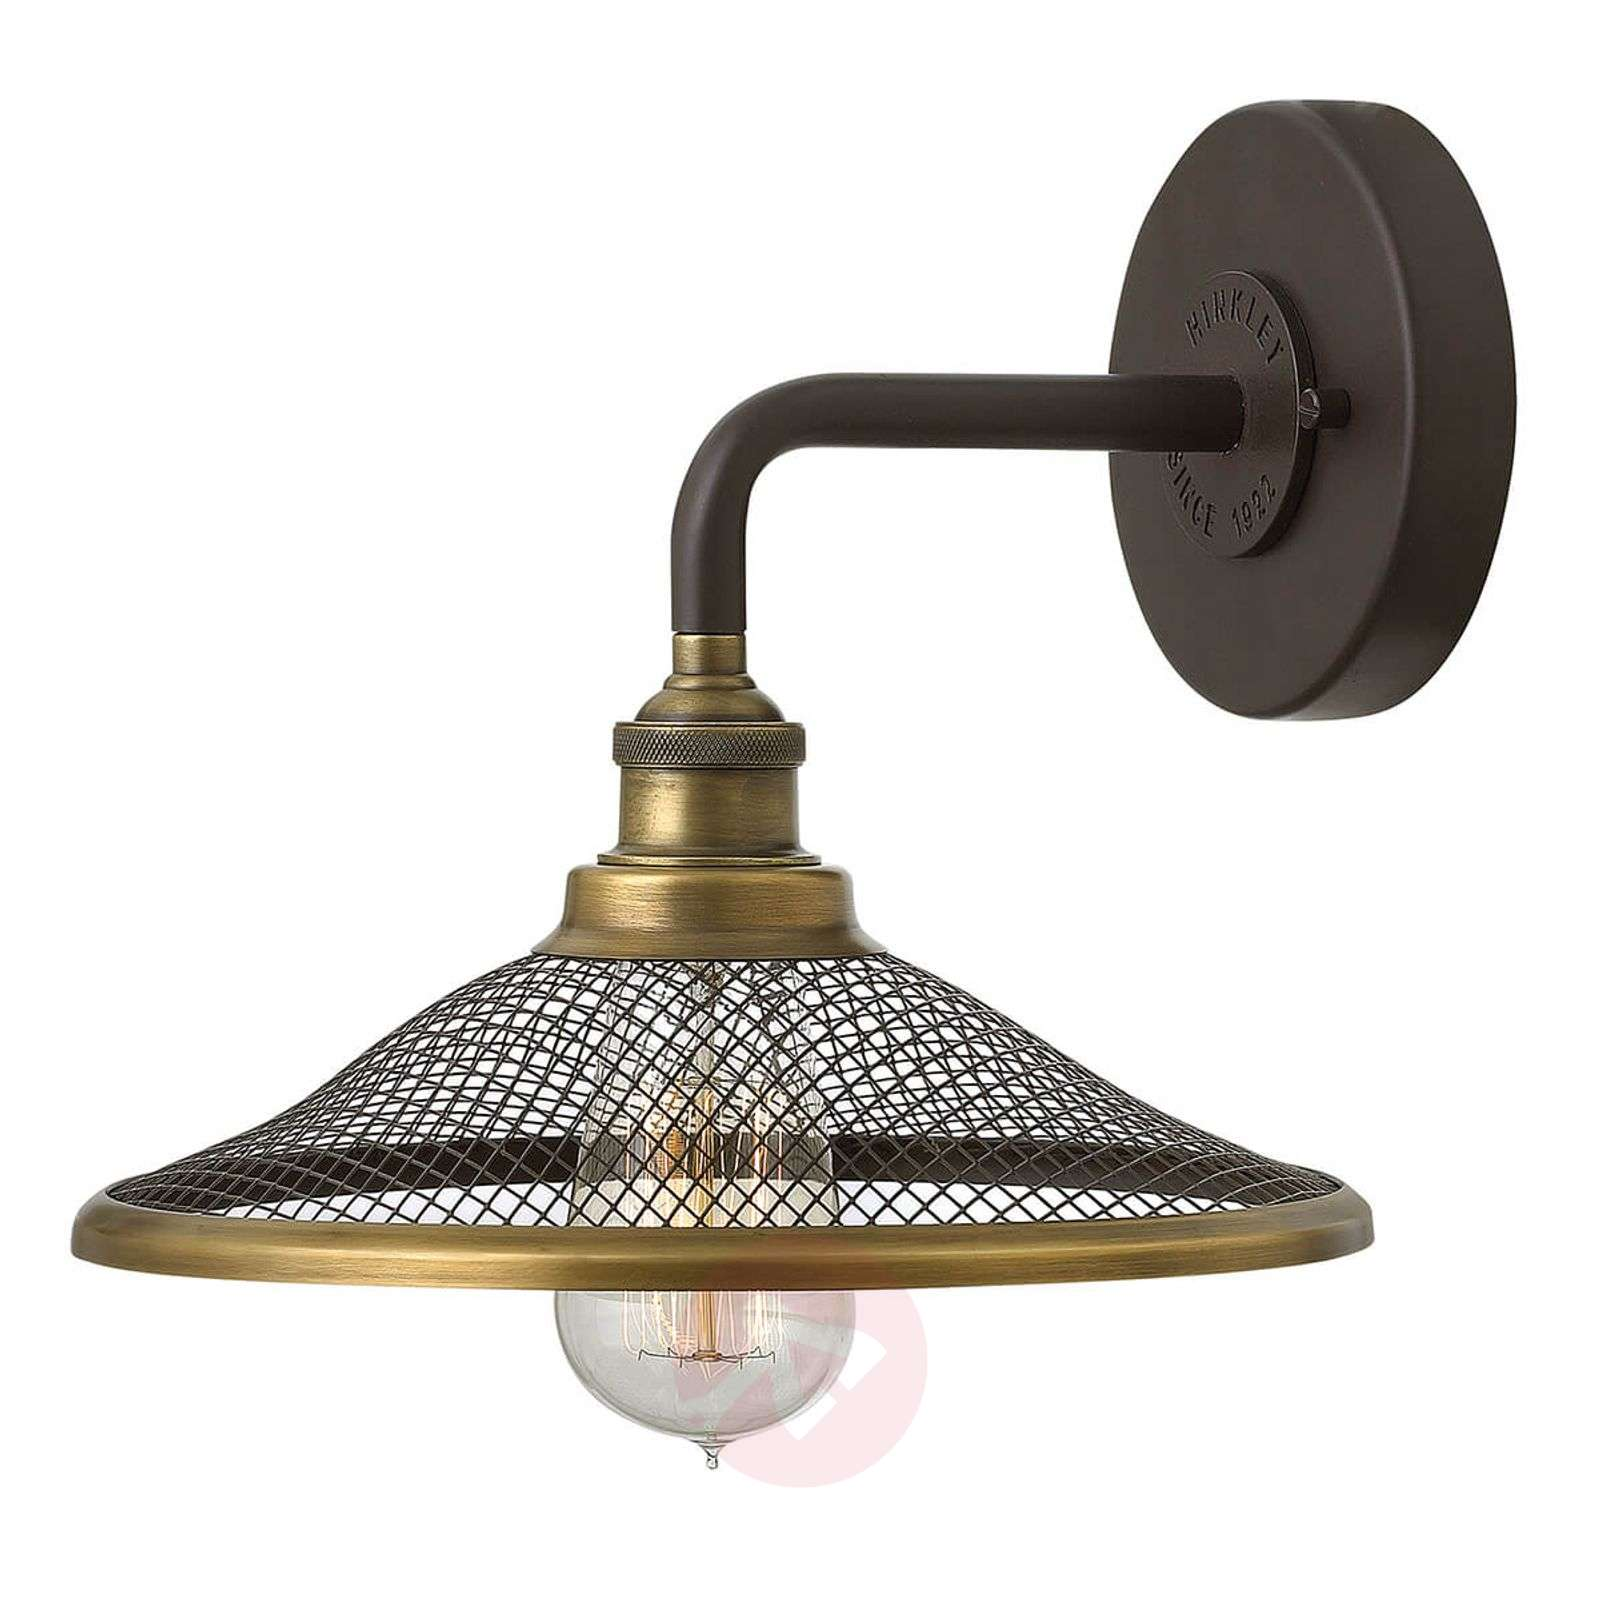 low priced bdbd8 3bde9 Industrial style wall light Rigby